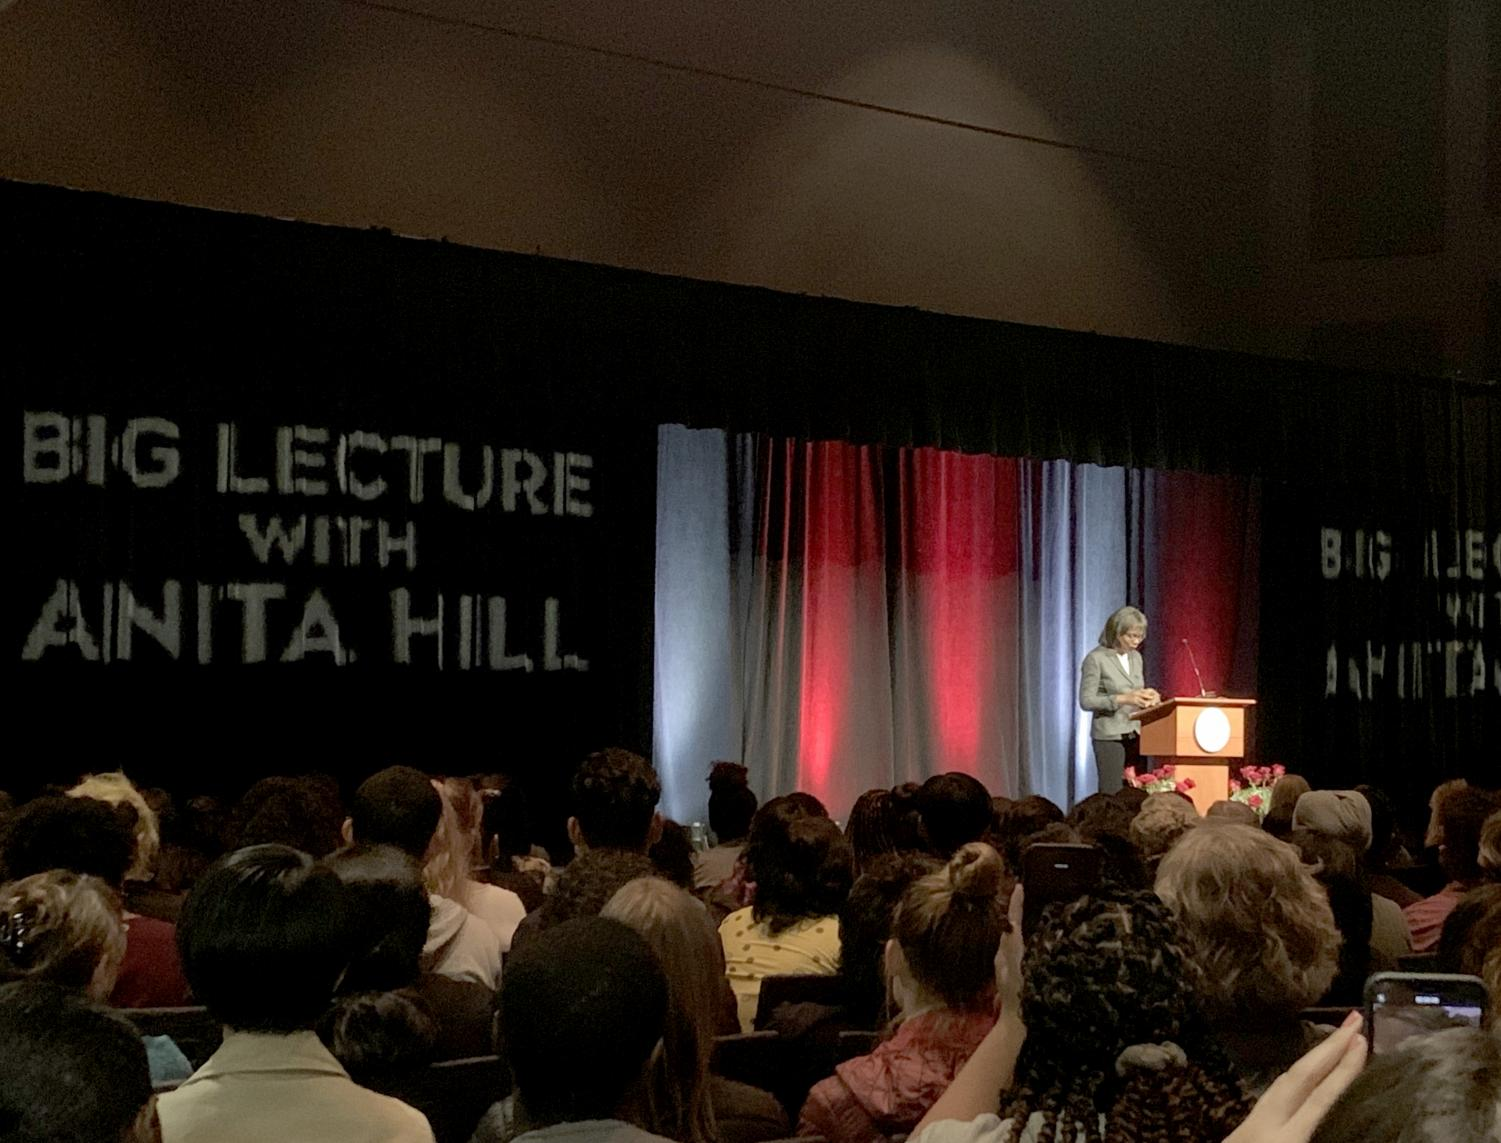 Students and faculty watch as Anita Hill shares her story during the